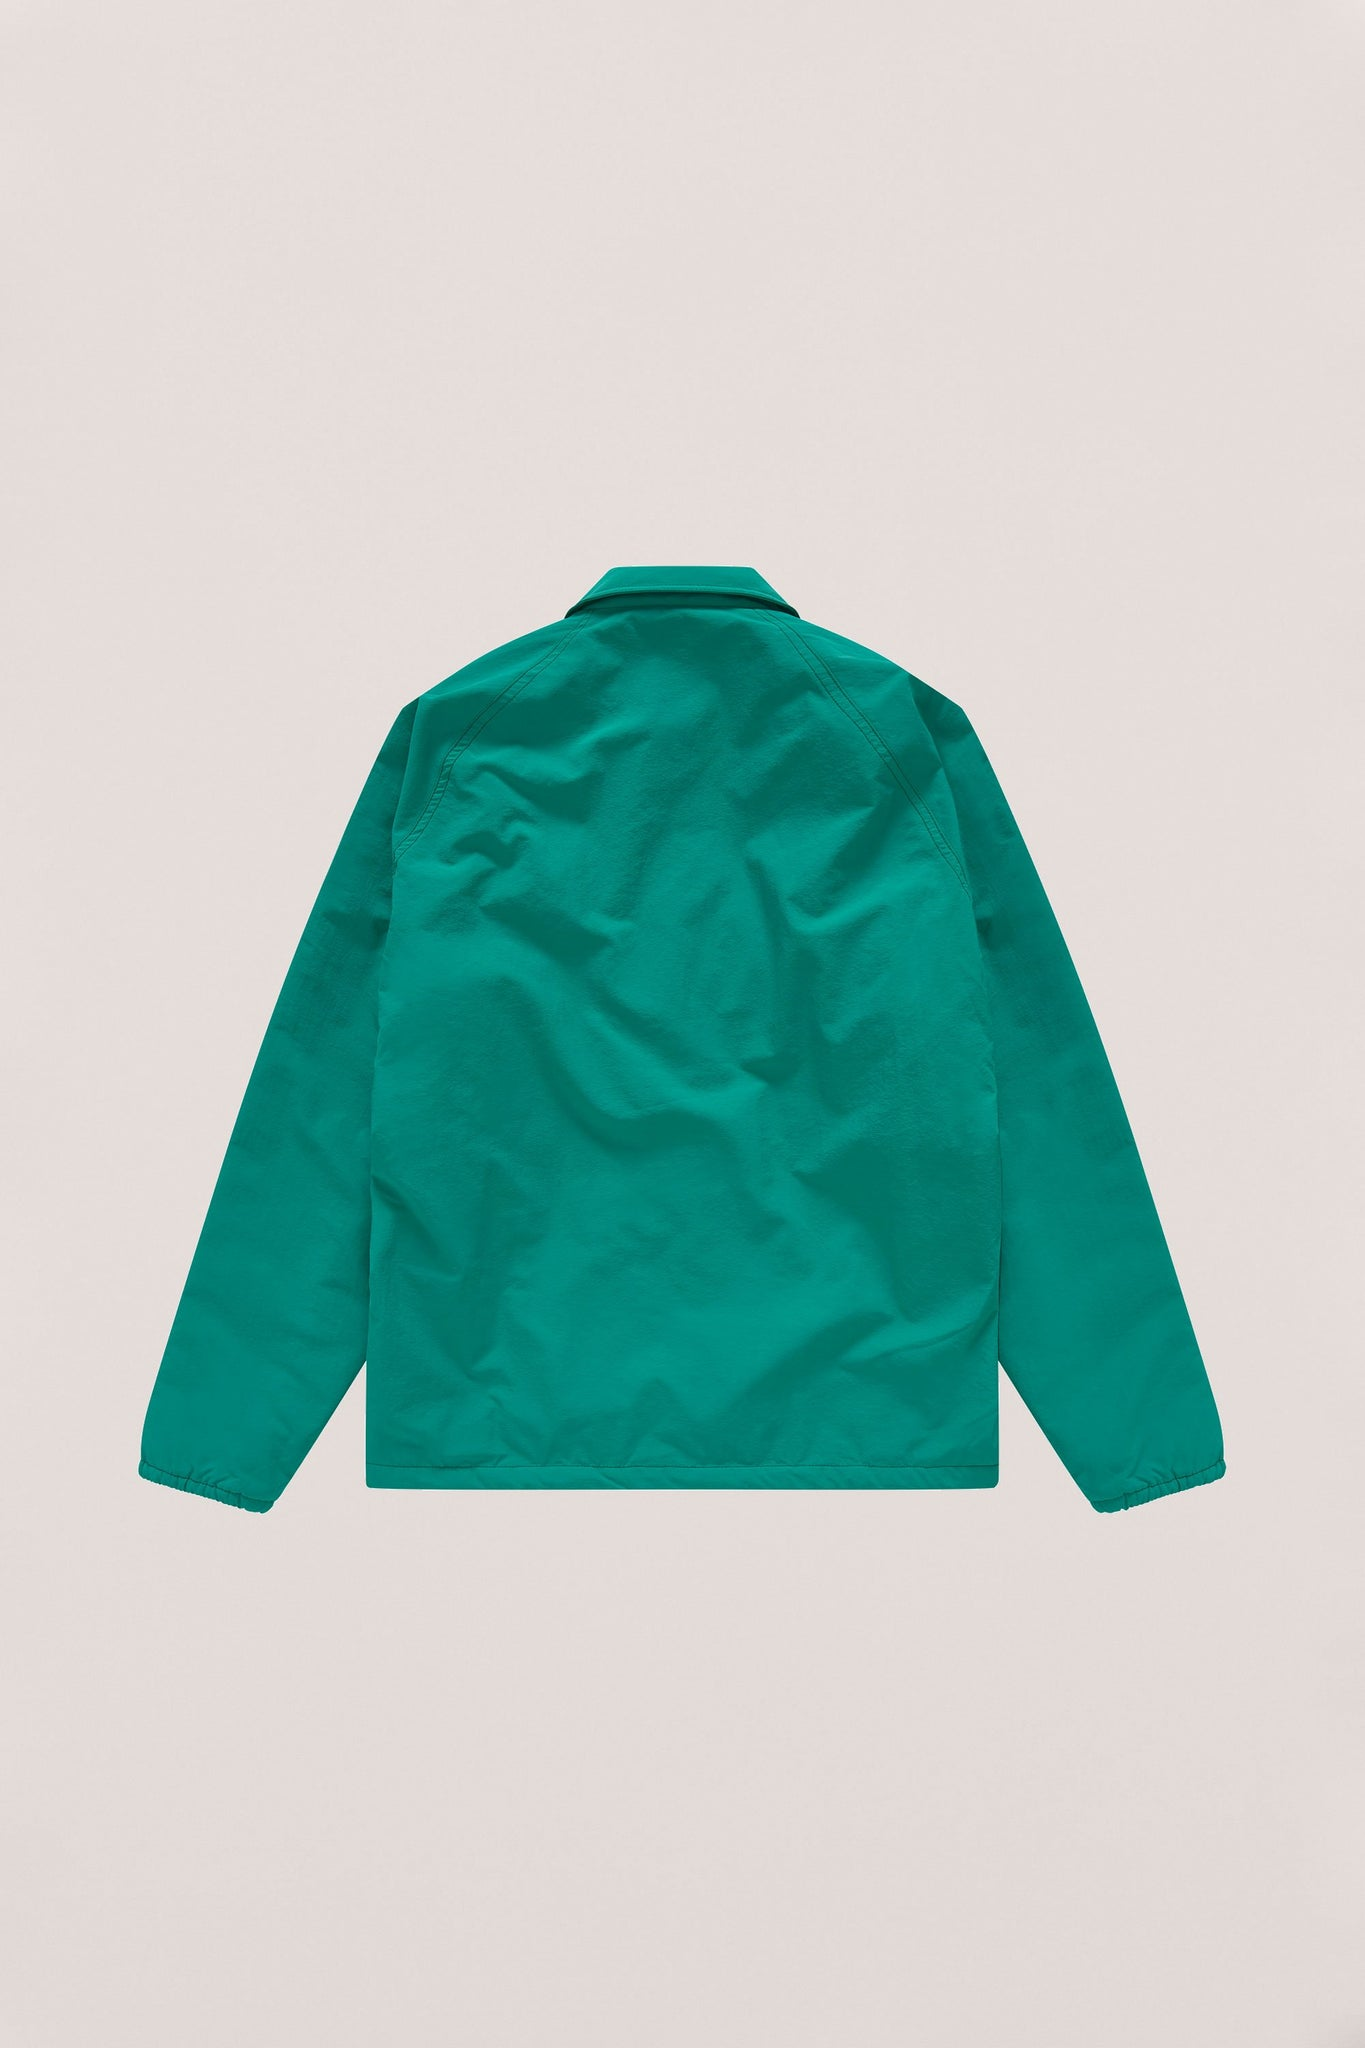 Jocks jacket green